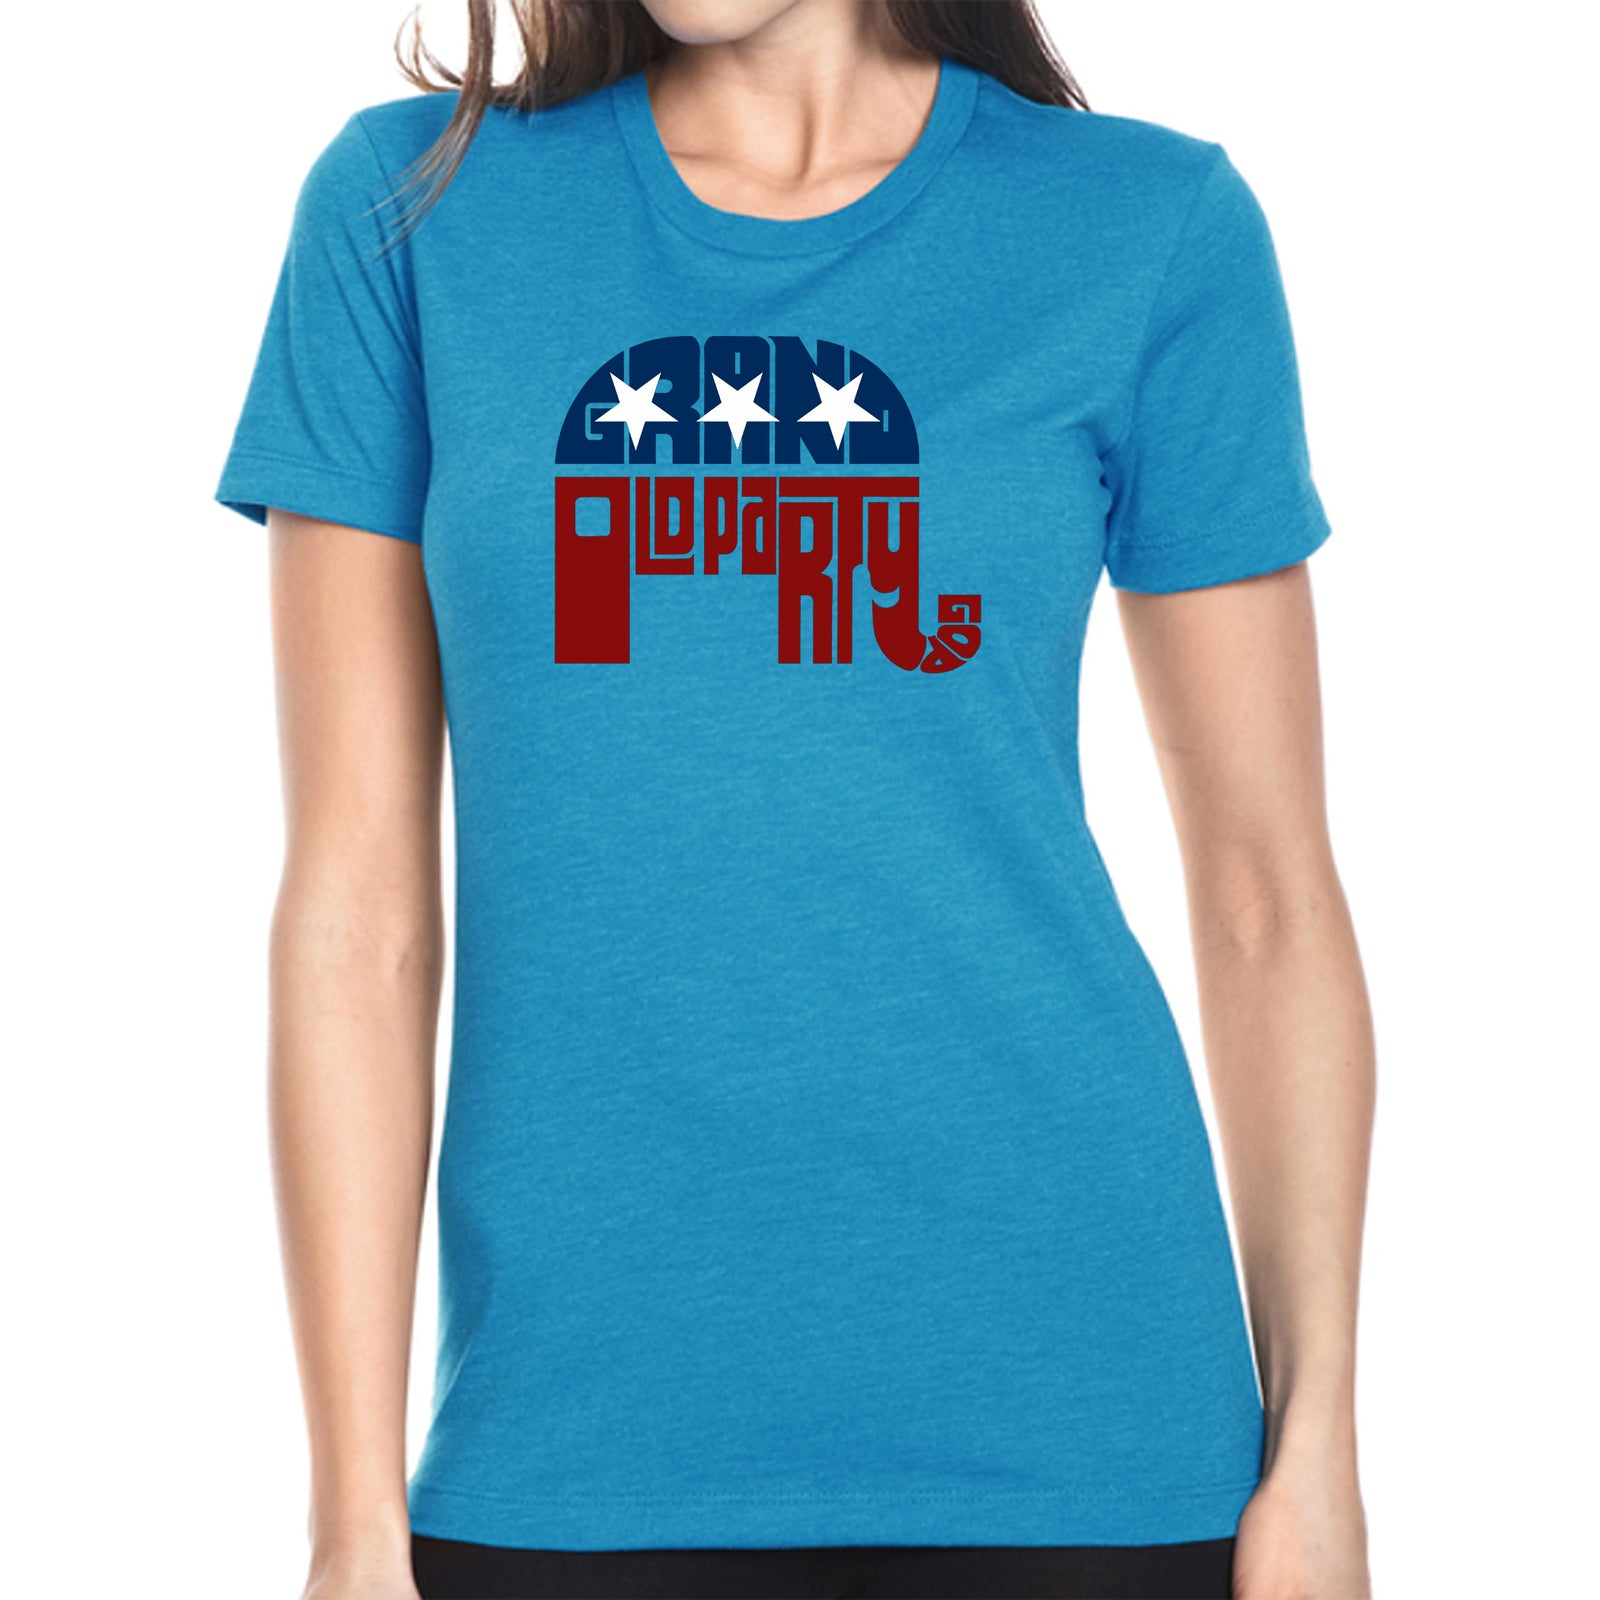 Women's Premium Blend Word Art T-shirt - REPUBLICAN - GRAND OLD PARTY